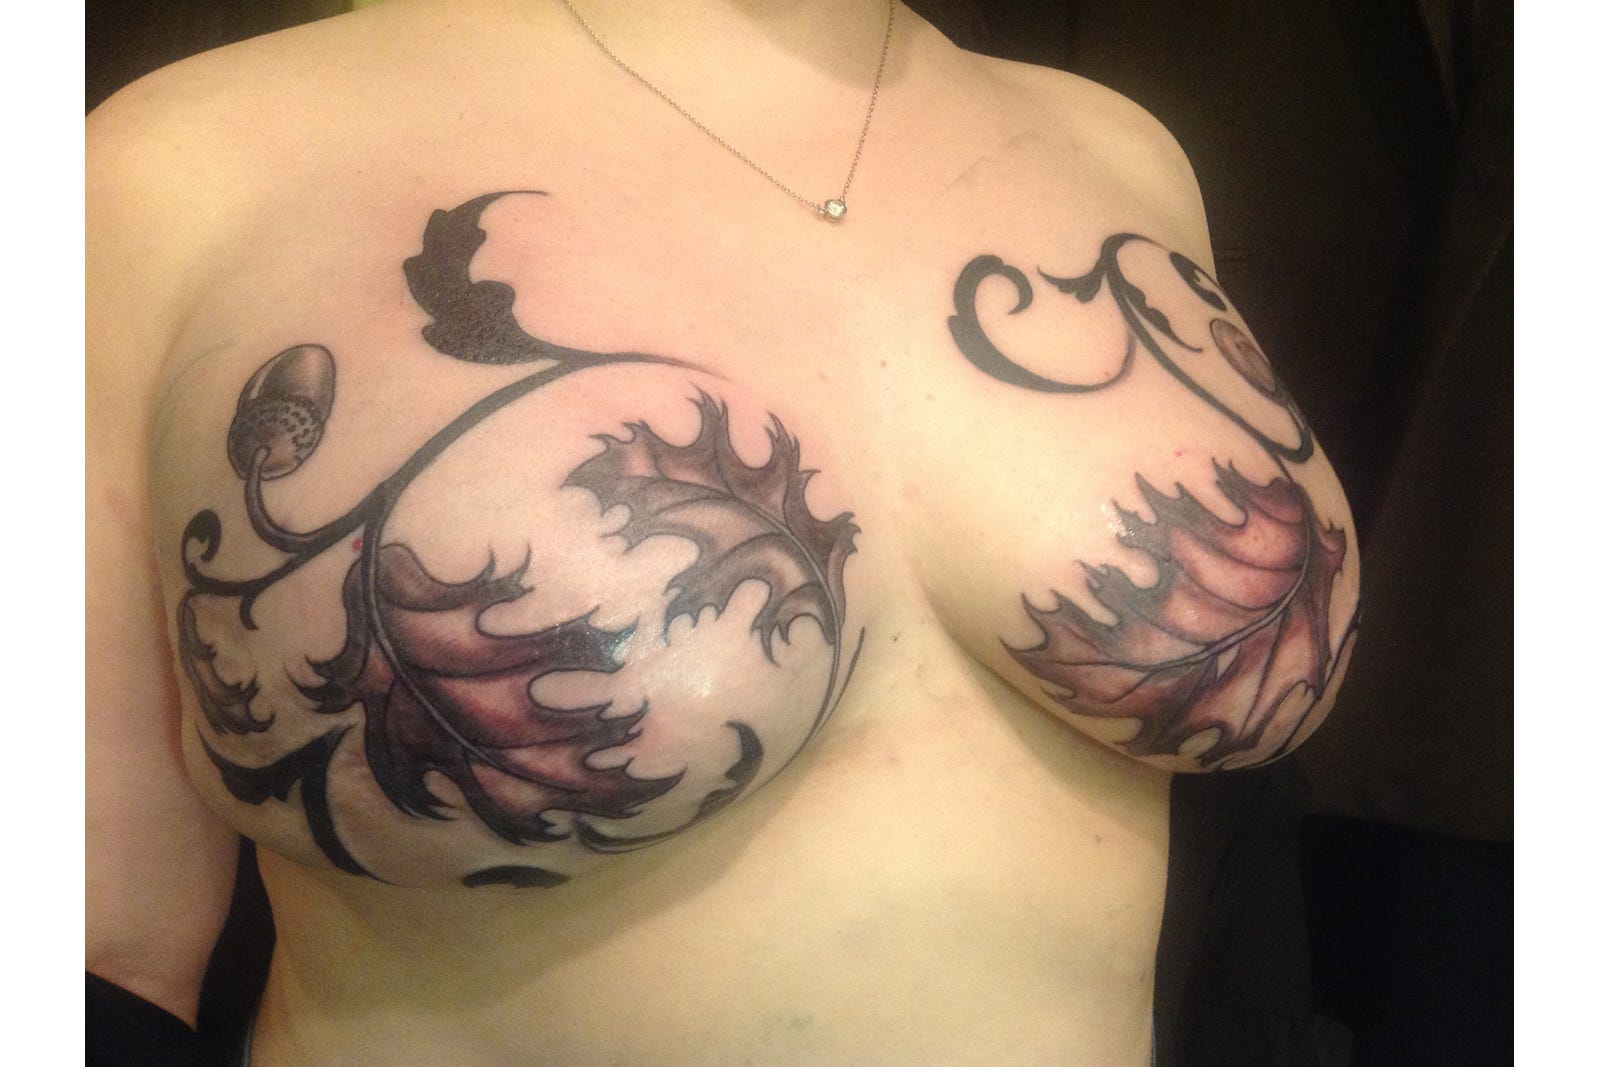 Post mastectomy breast cancer tattoos for Female nipple tattoos